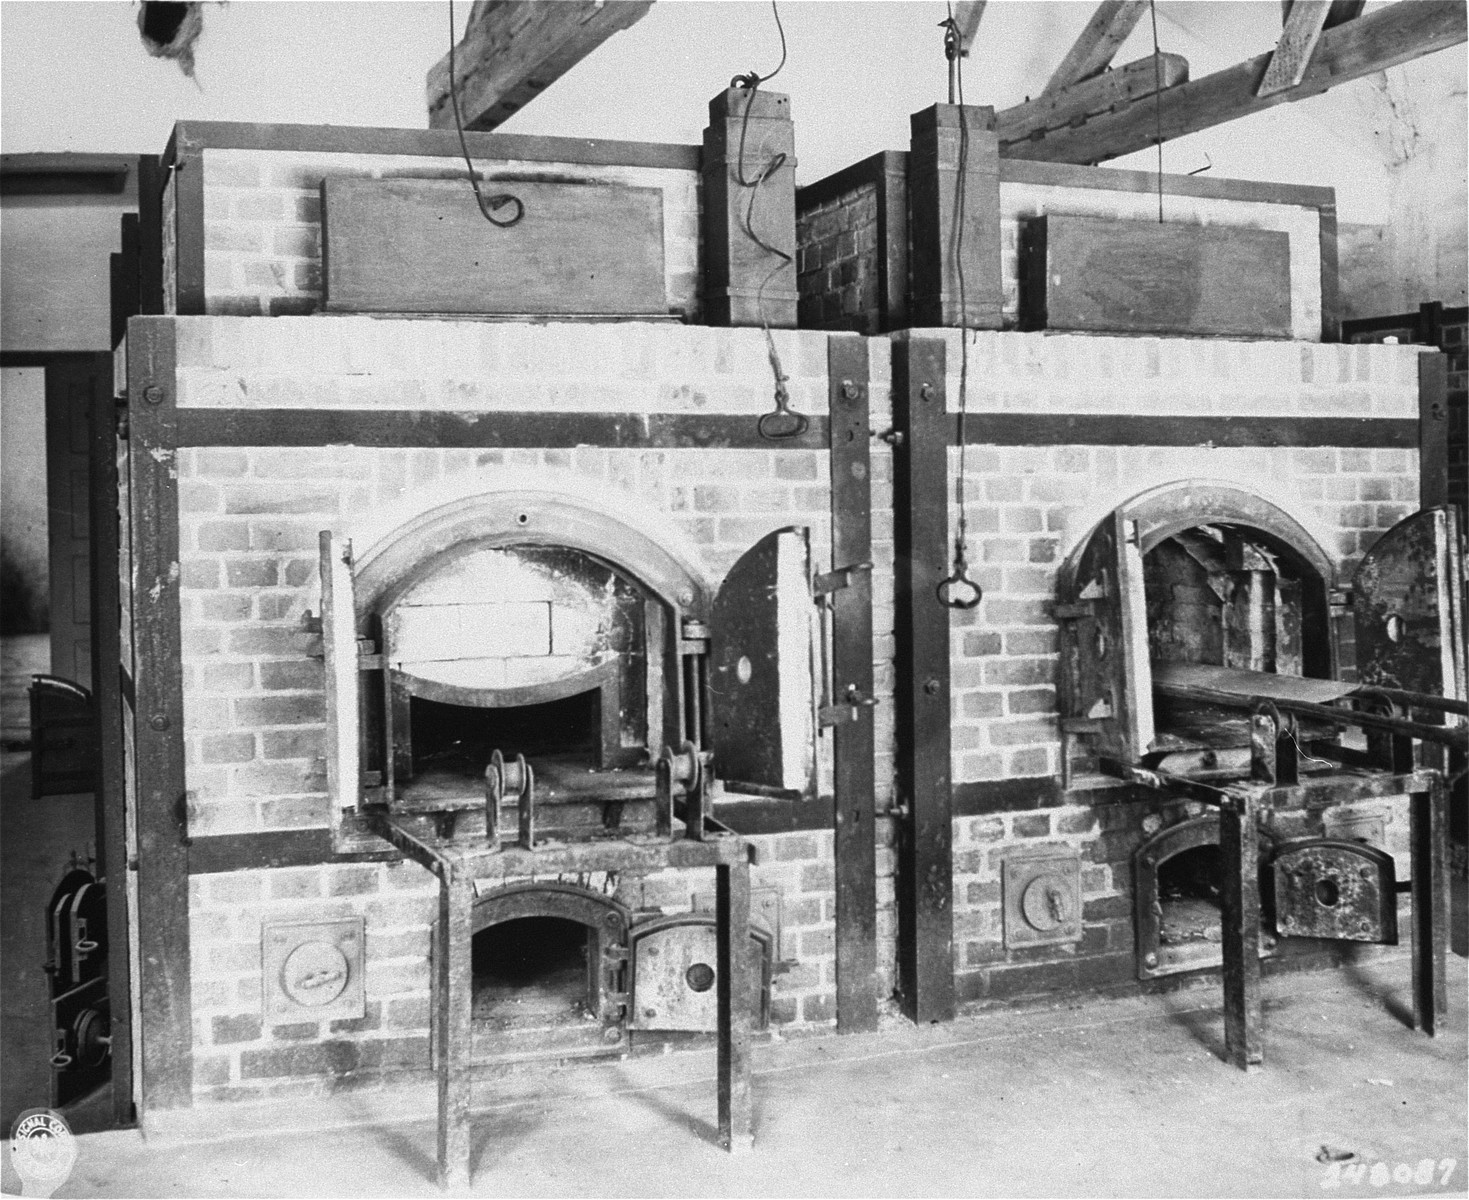 Two ovens inside the crematorium at the Dachau concentration camp.